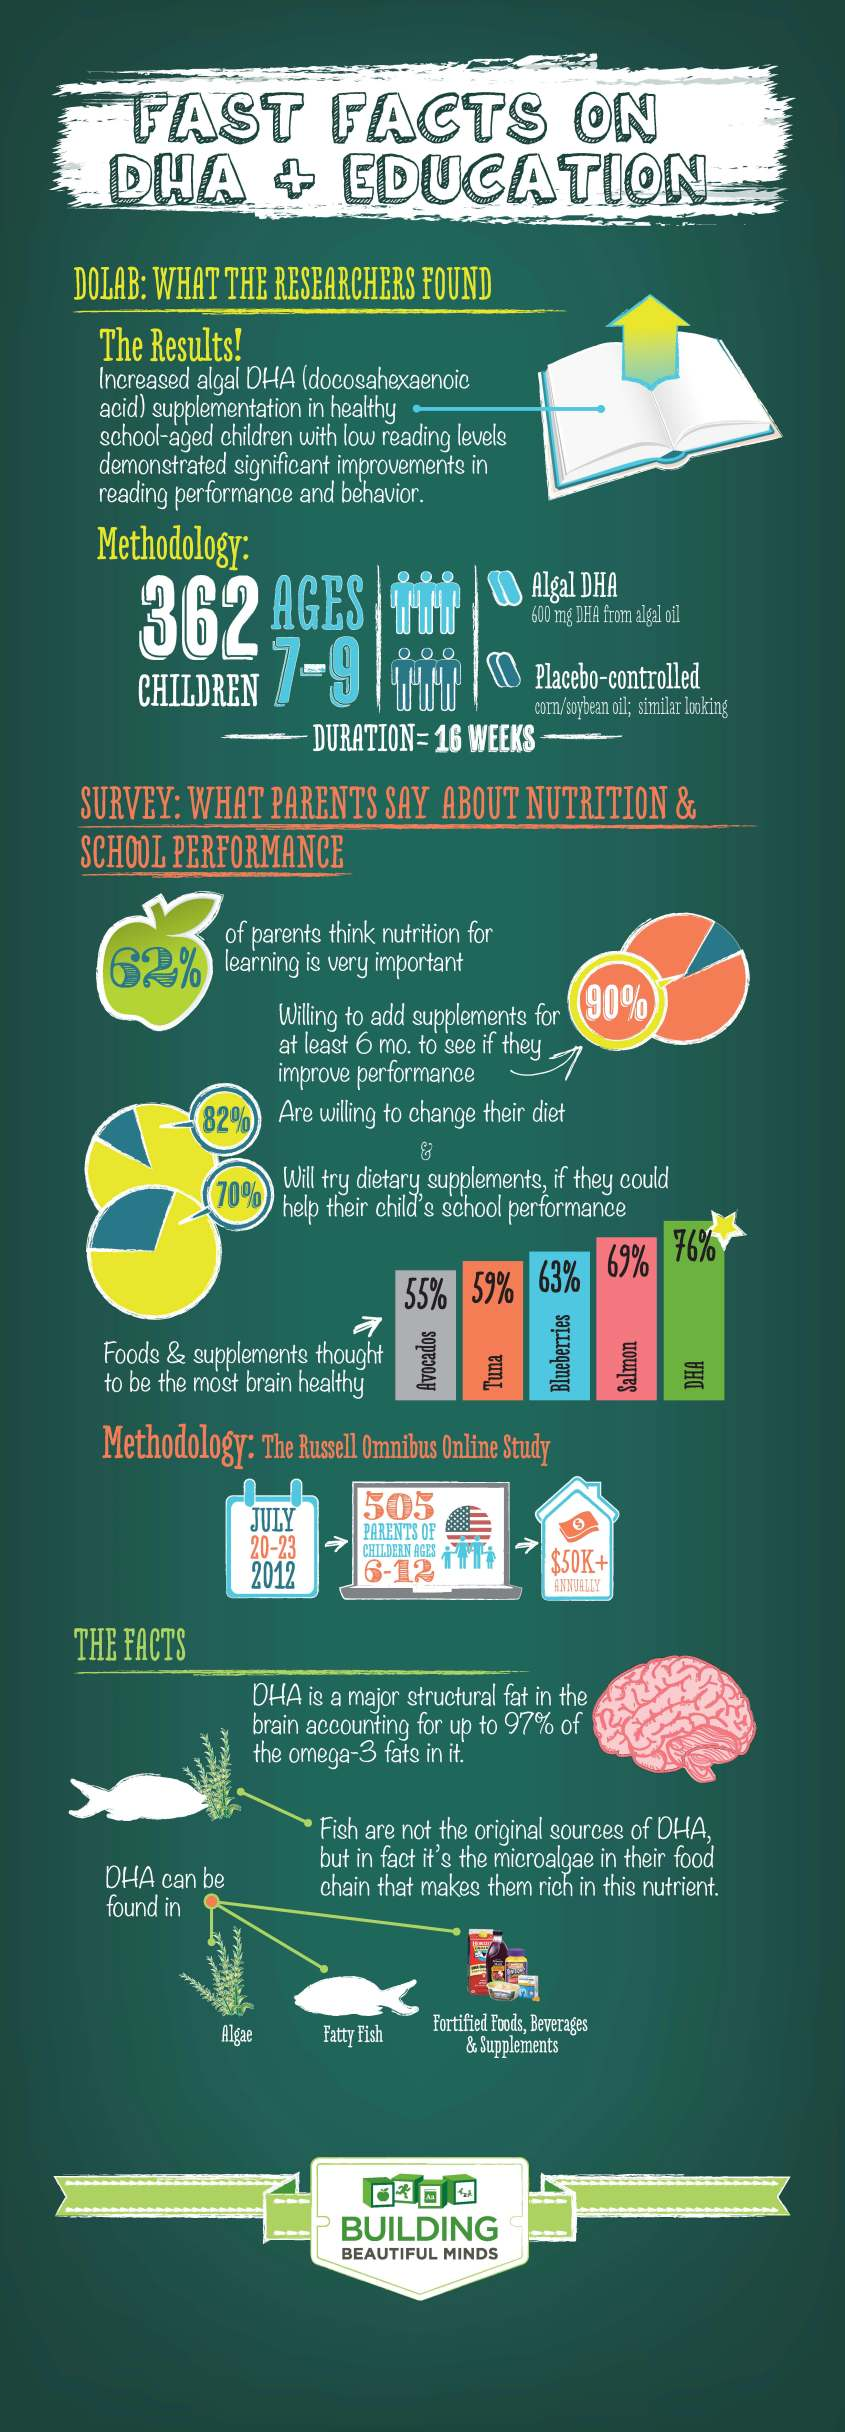 Fast Facts on DHA and Education